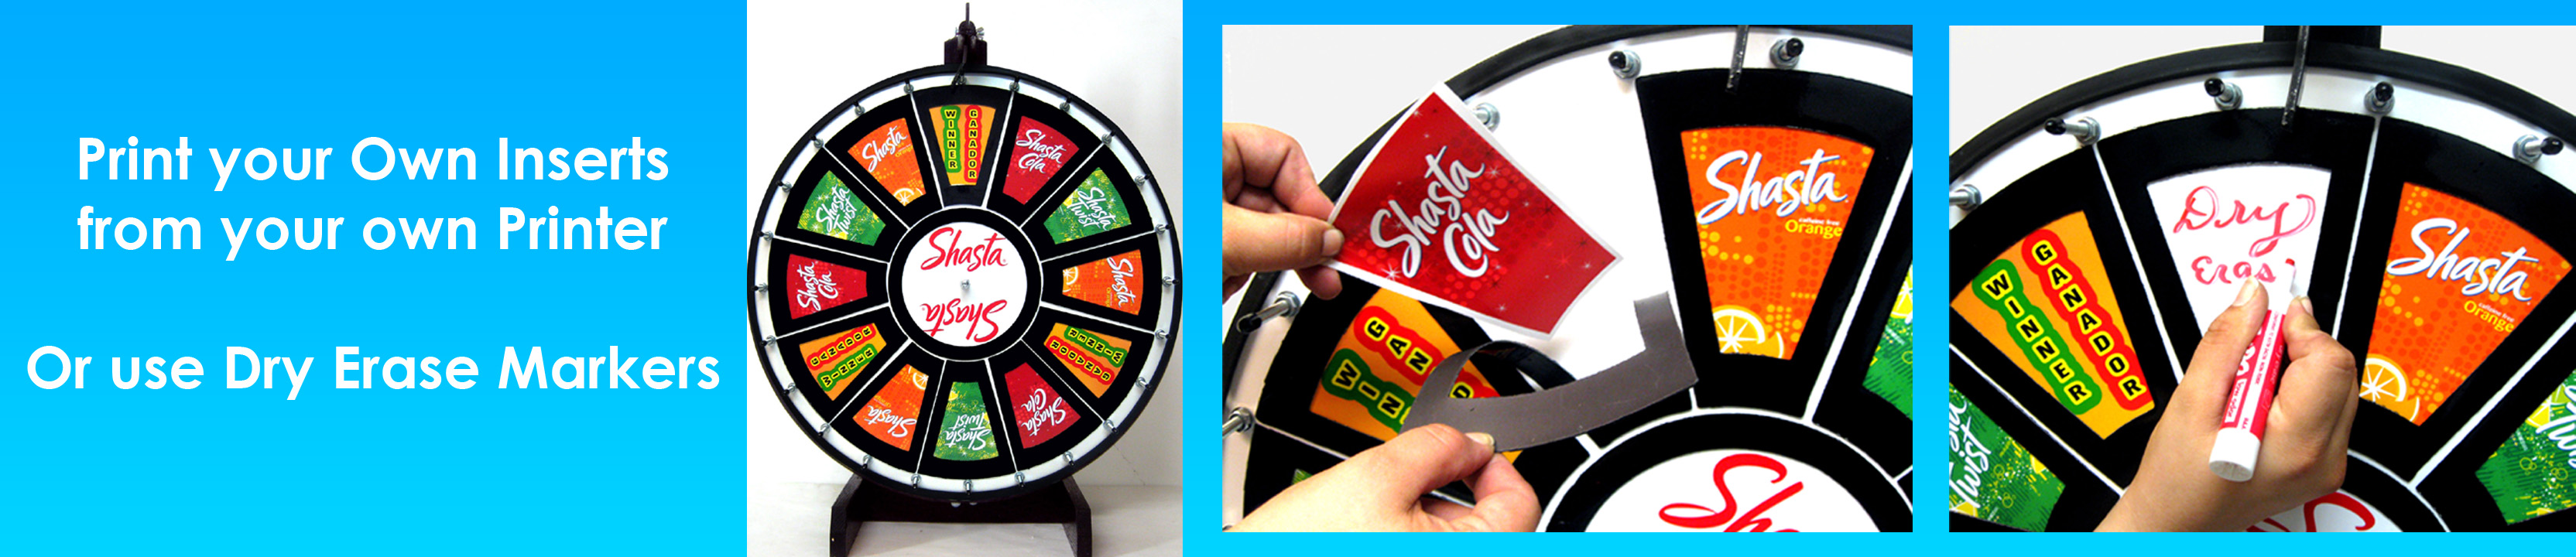 prize-wheel-insert-graphic-pwd.jpg